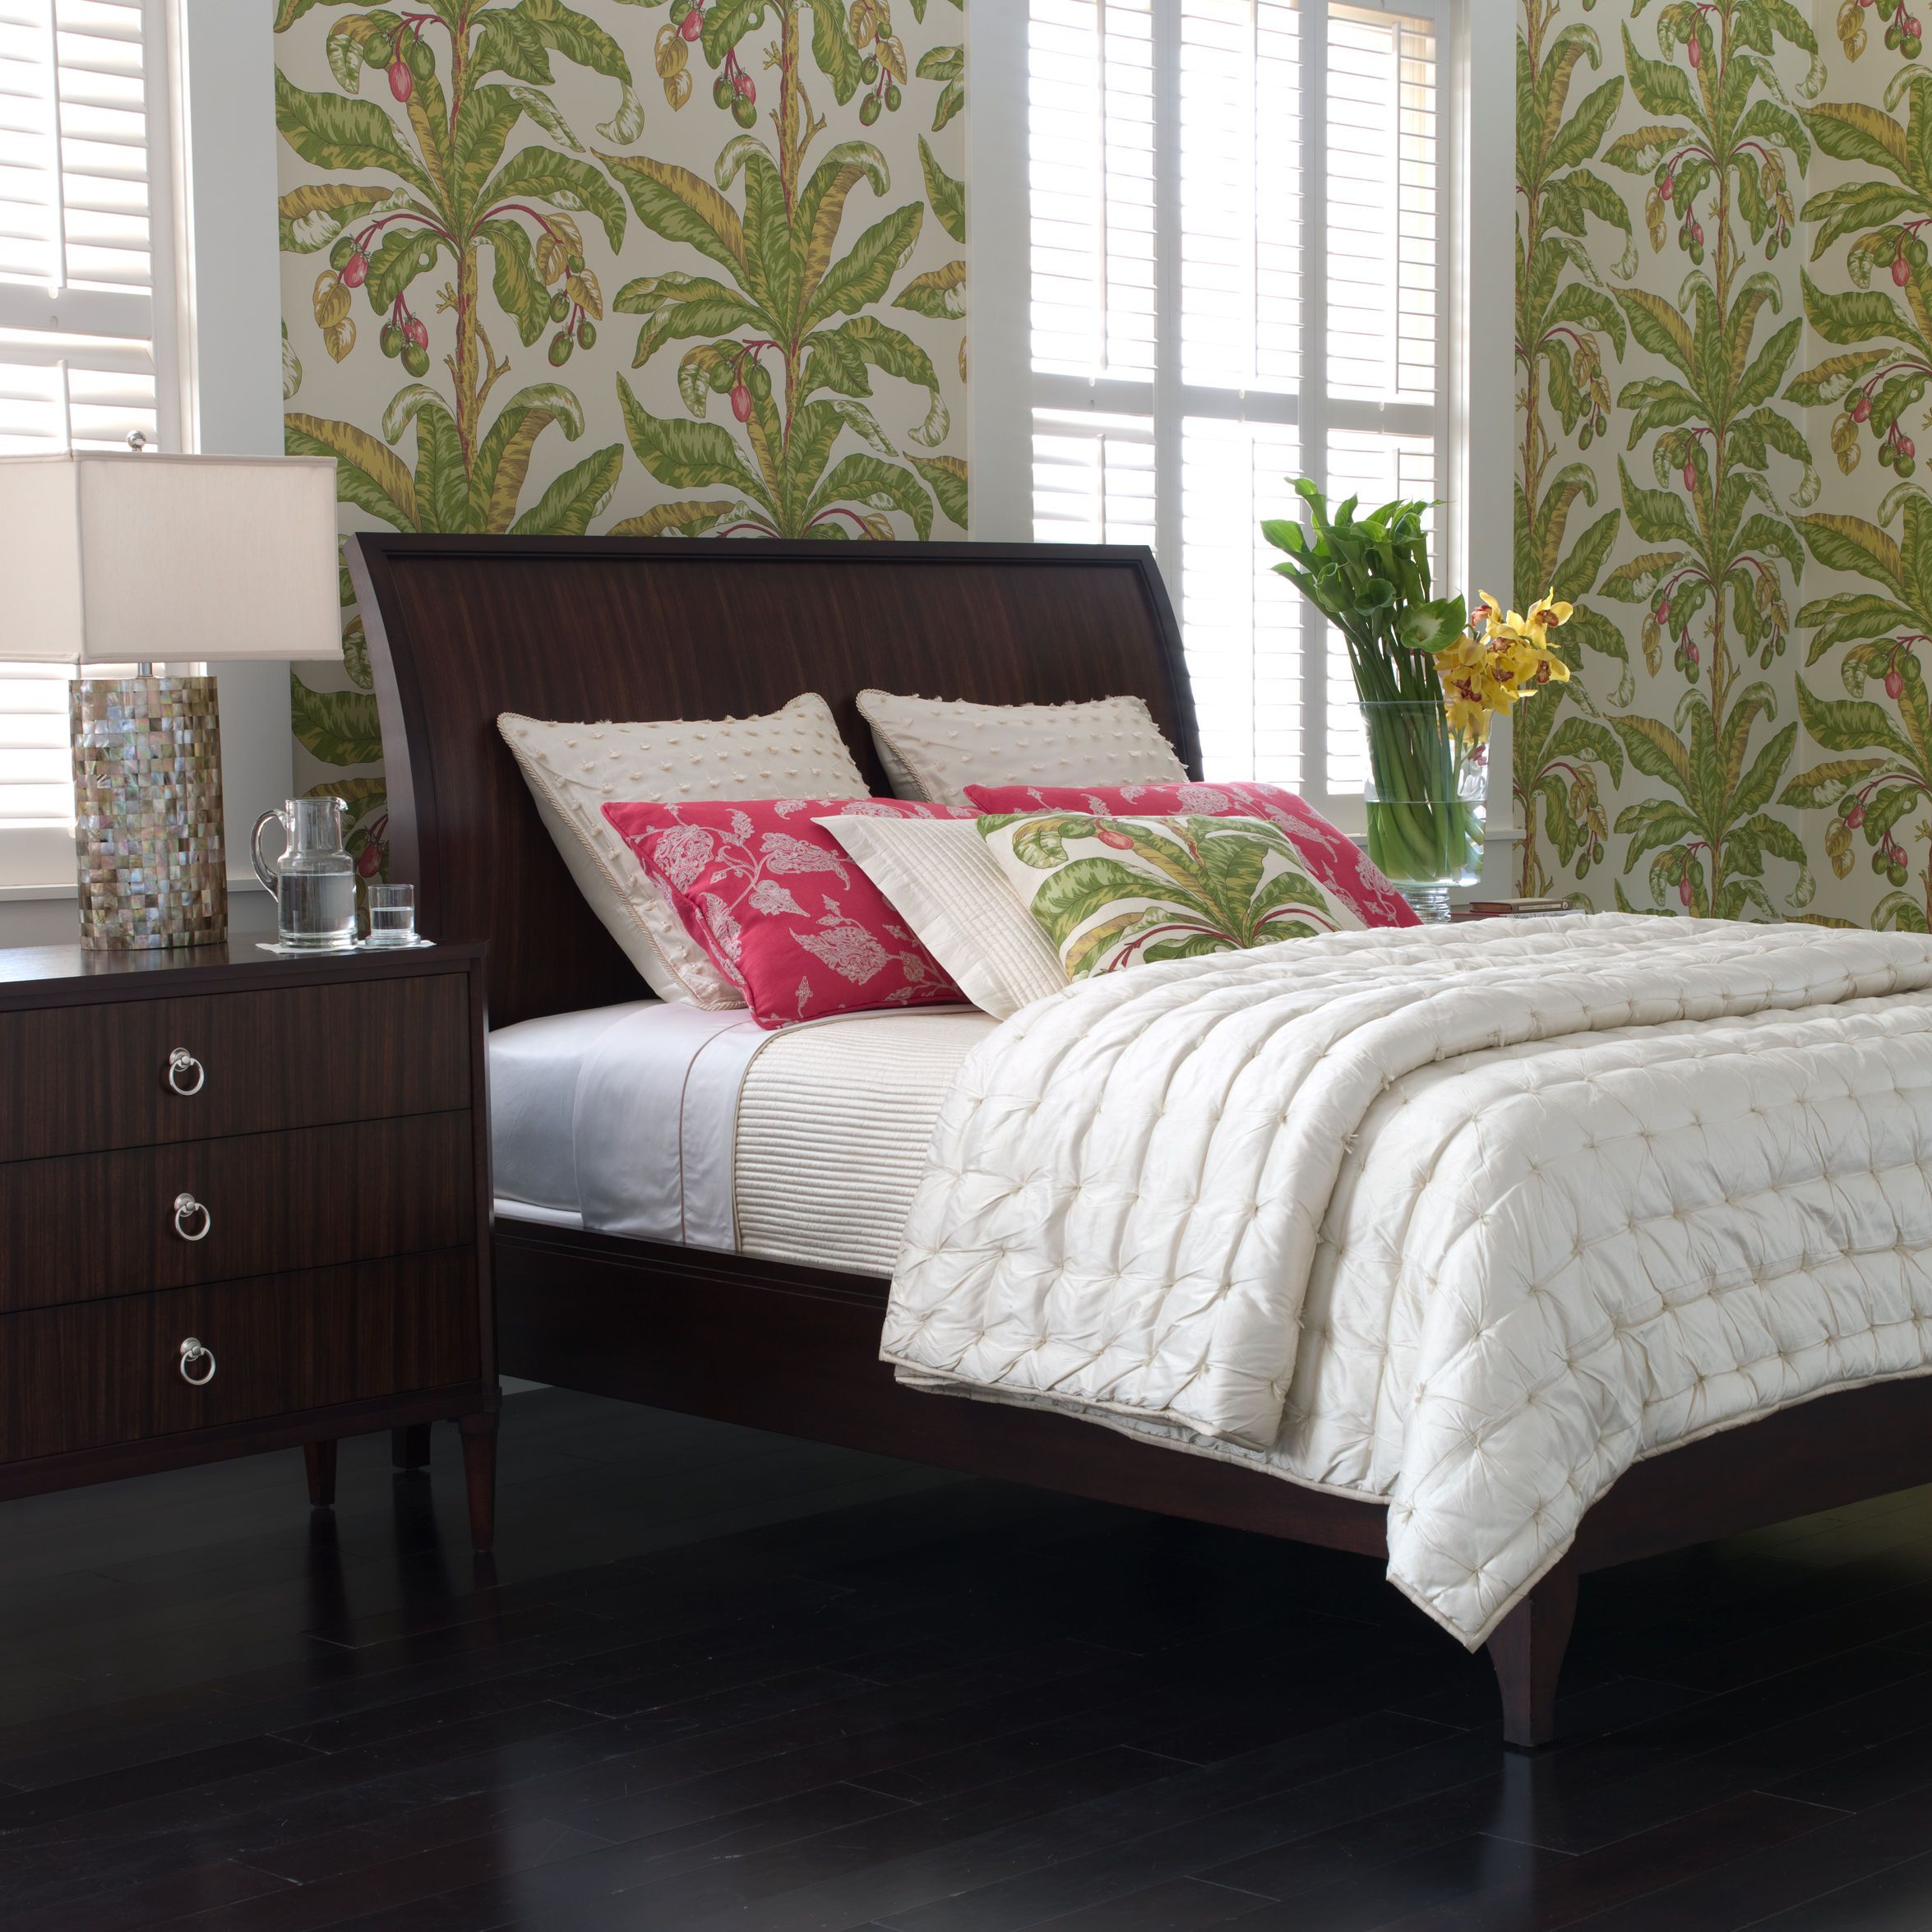 Gramercy Bed Ethan Allen US Bedroom Pinterest Bedrooms - Ethan allen bedroom furniture sale